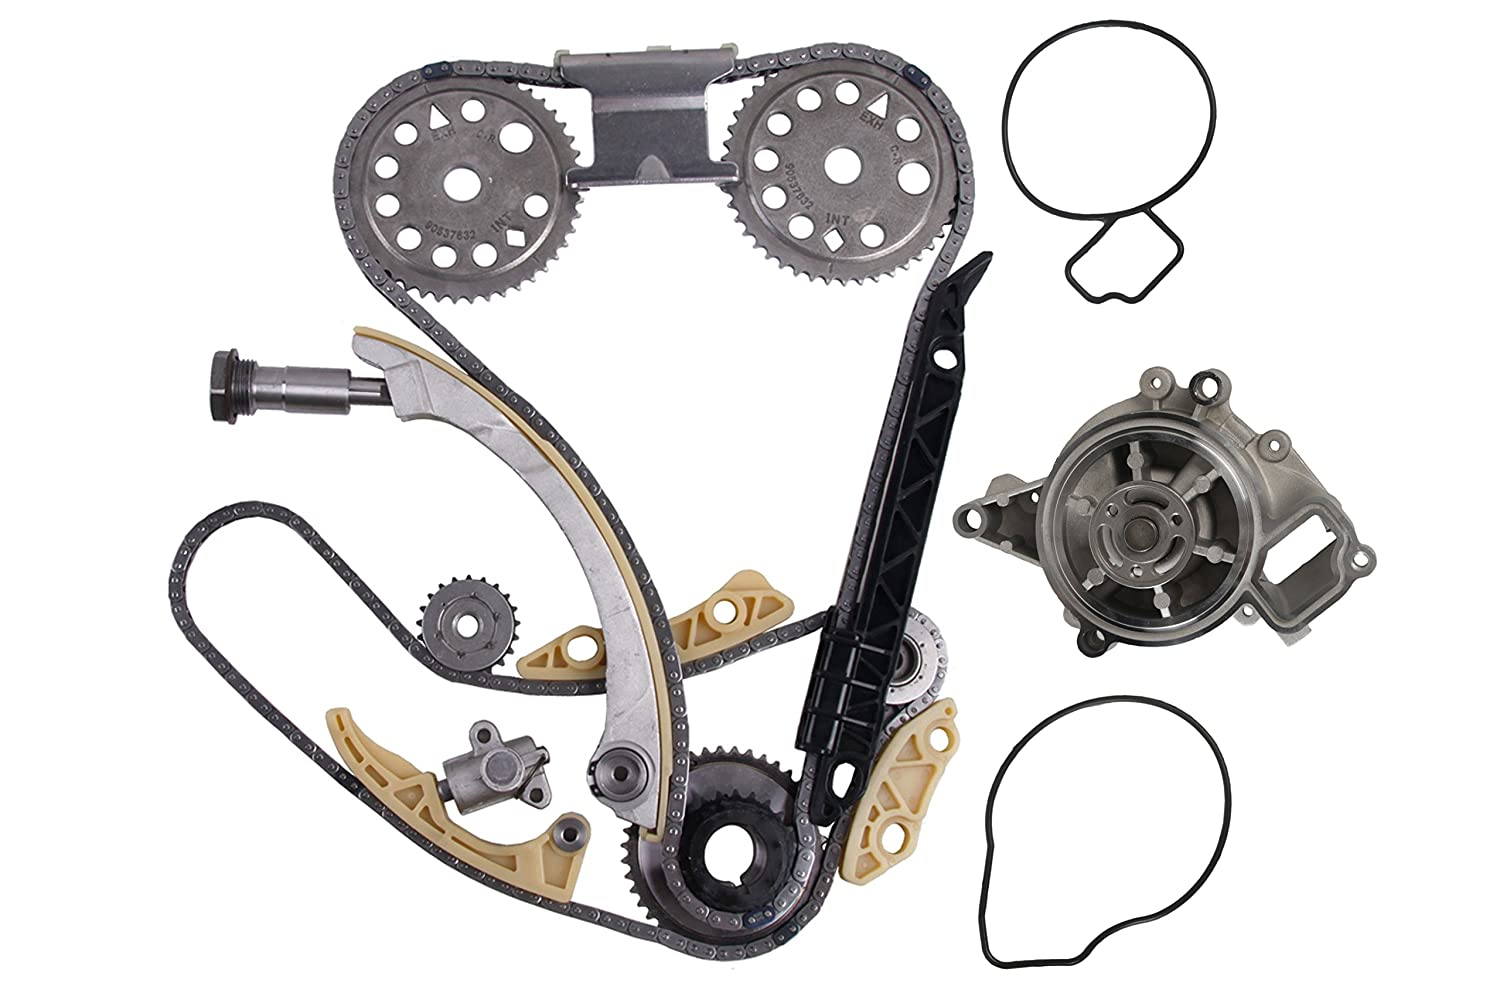 MOCA Timing Chain Kit Water Pump for 2000-2011 Chevrolet Cobalt HHR & Pontiac G5 & Saturn Sky Aura Vue 2.2L 2.4L L4 DOHC F B OELINE Auto Parts